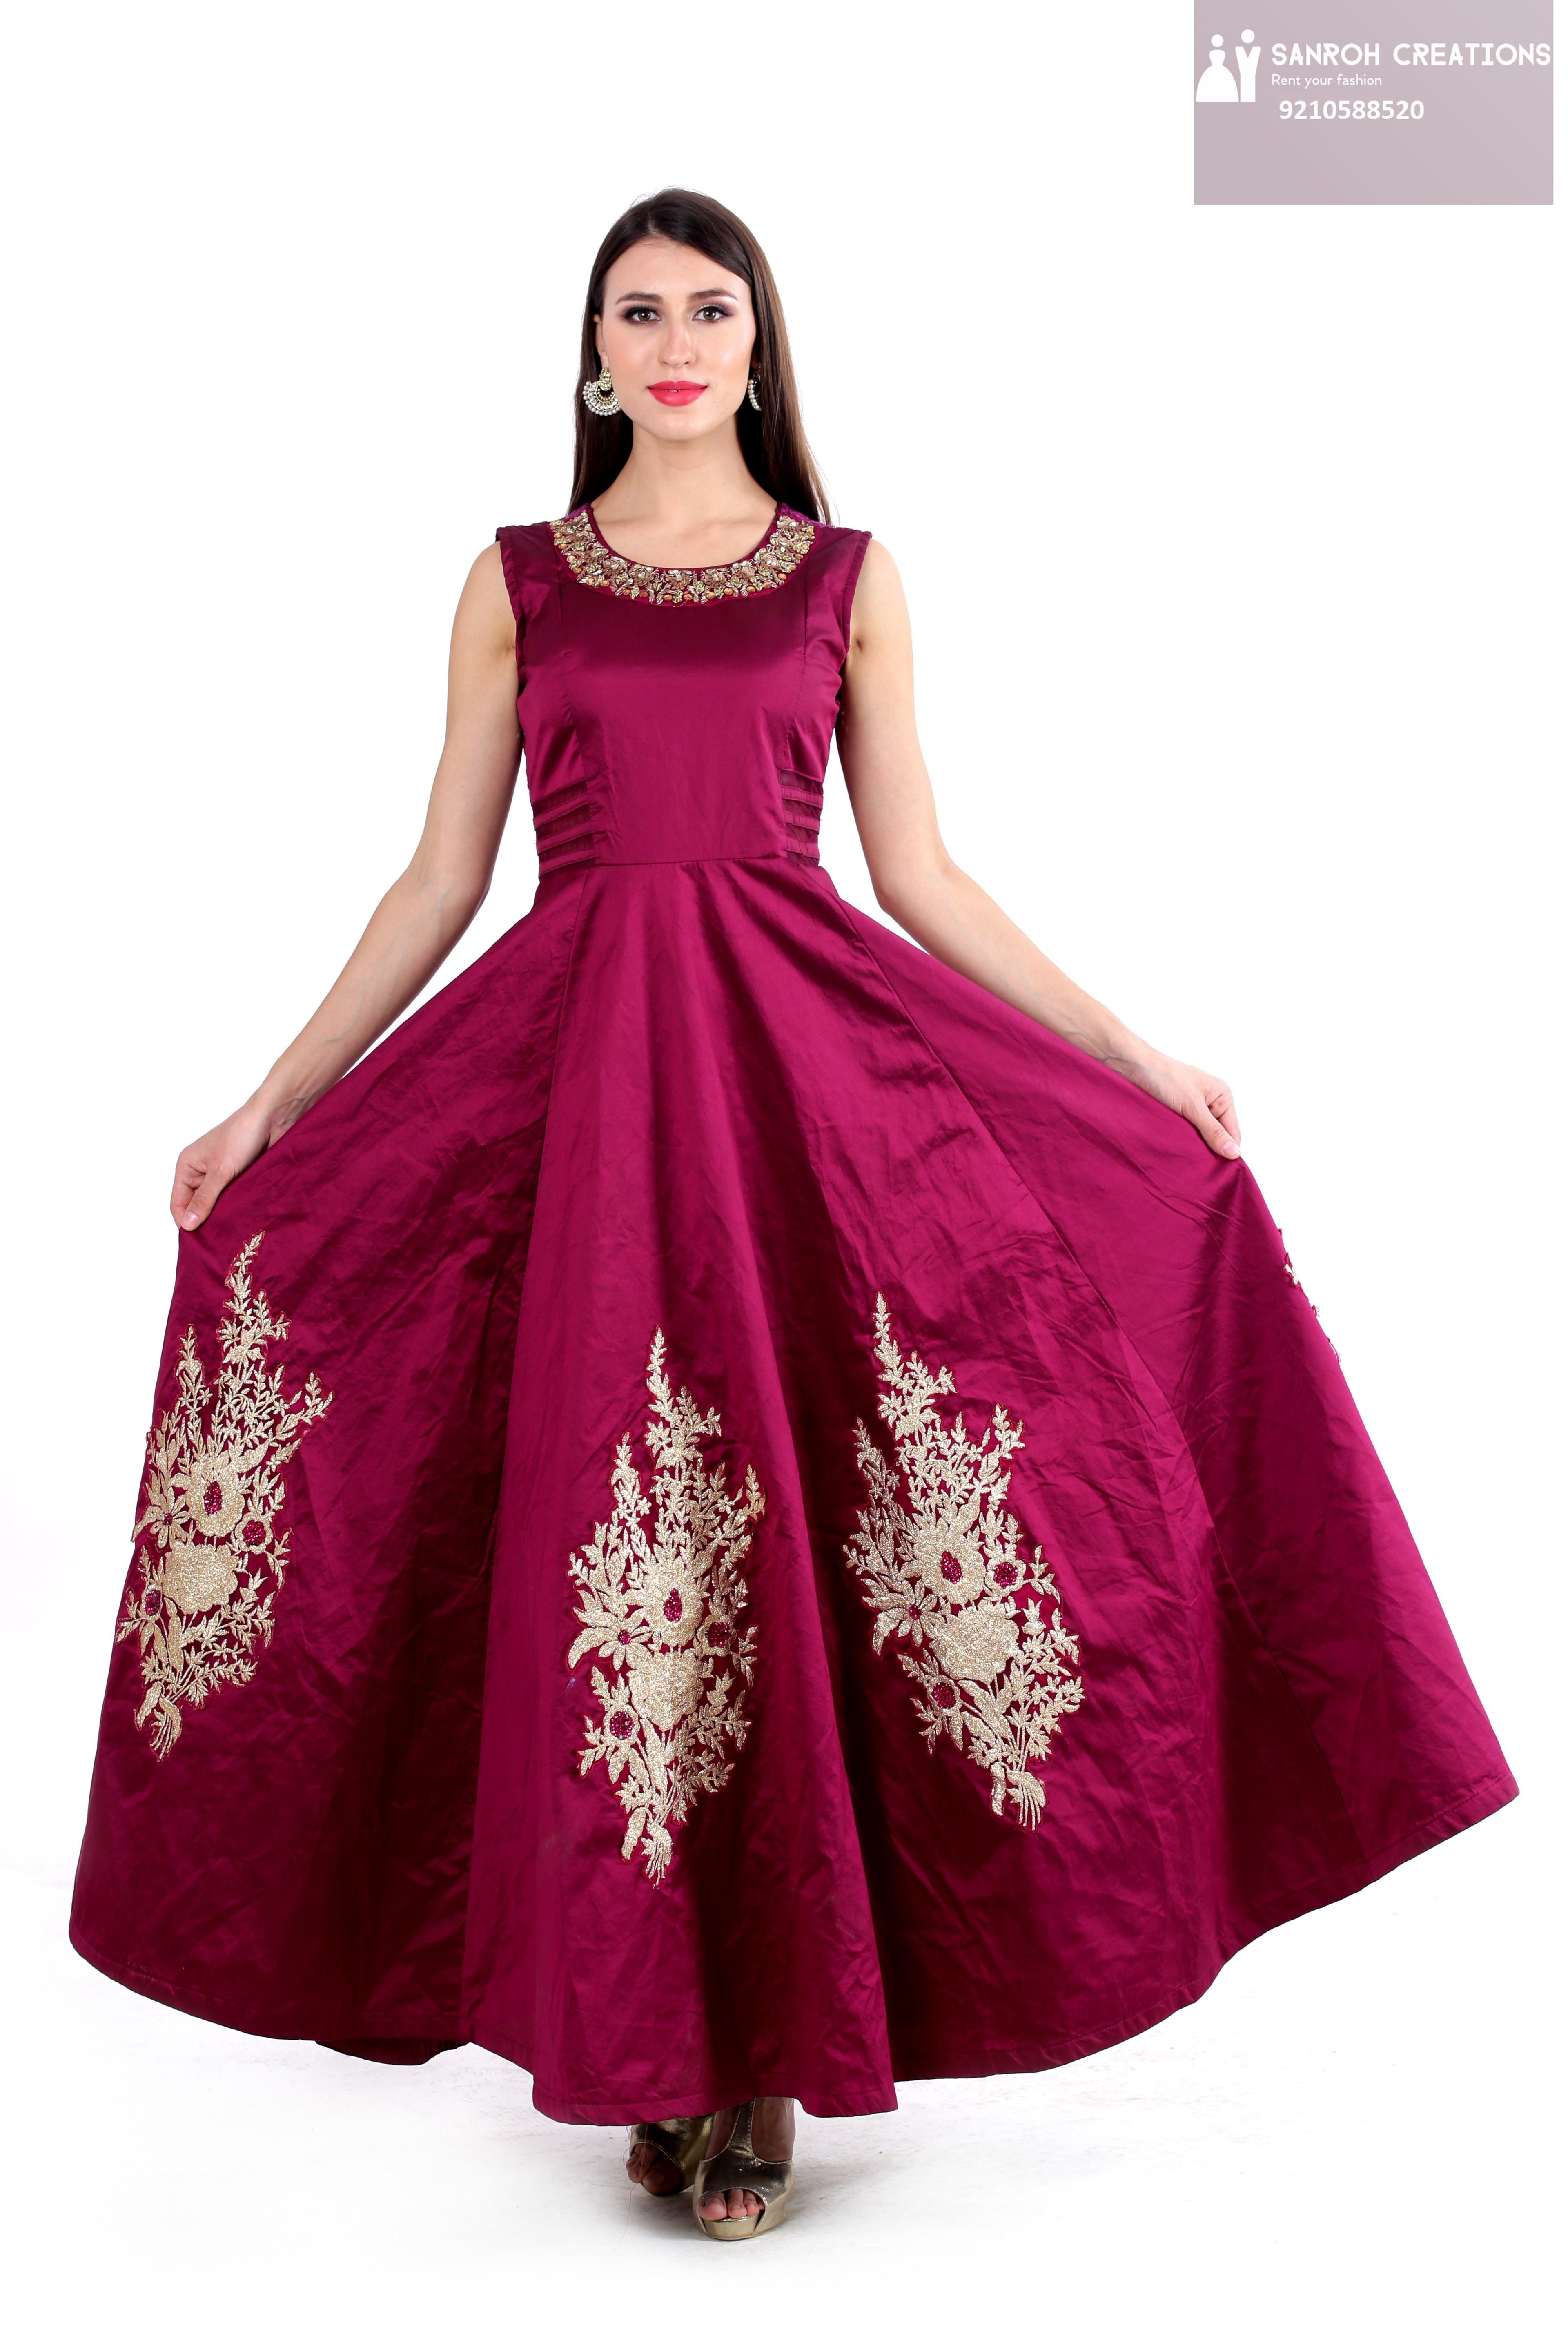 dresses for girls on rent in Gurgaon Sector 15